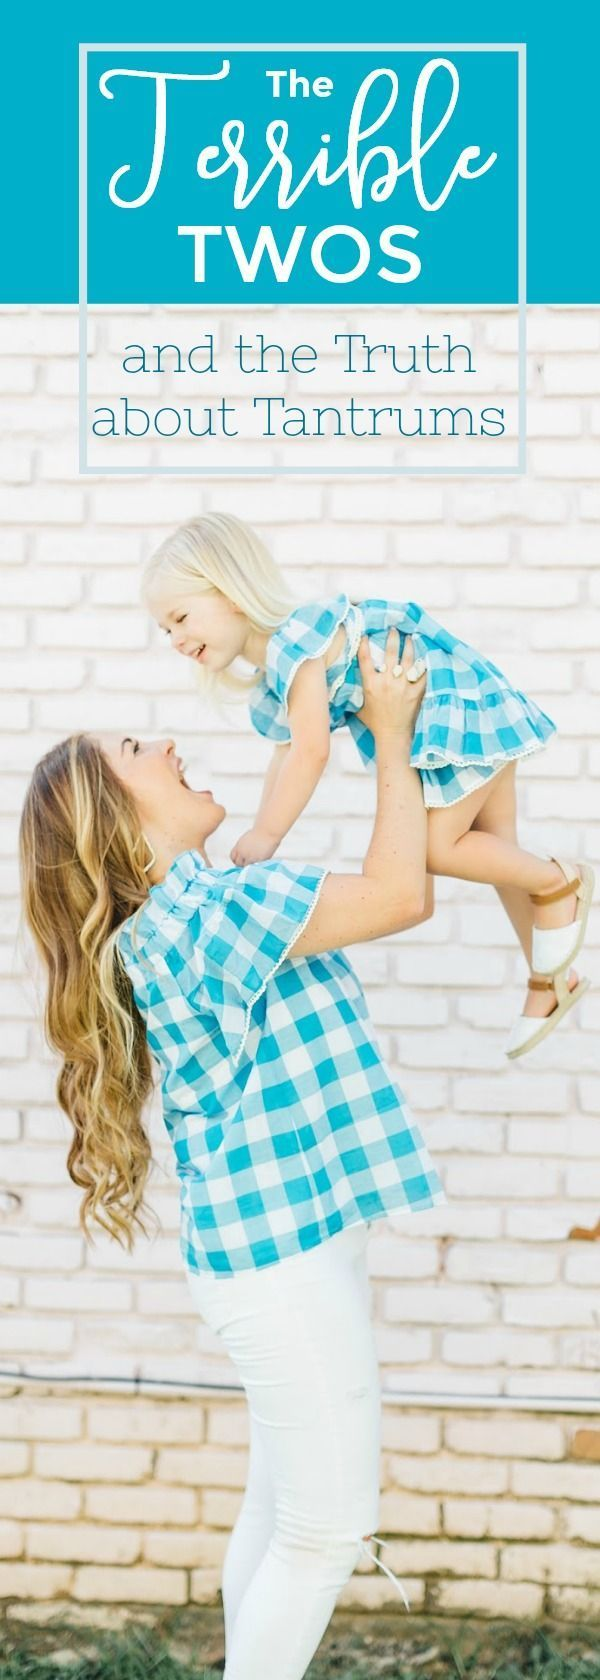 The Truth about the Terrible Twos Tantrums:  They grow up too fast. And remember it really is about the journey, not the destination. Take the good with the bad and enjoy these moments. The only really terriblething about the terrible twos is that the